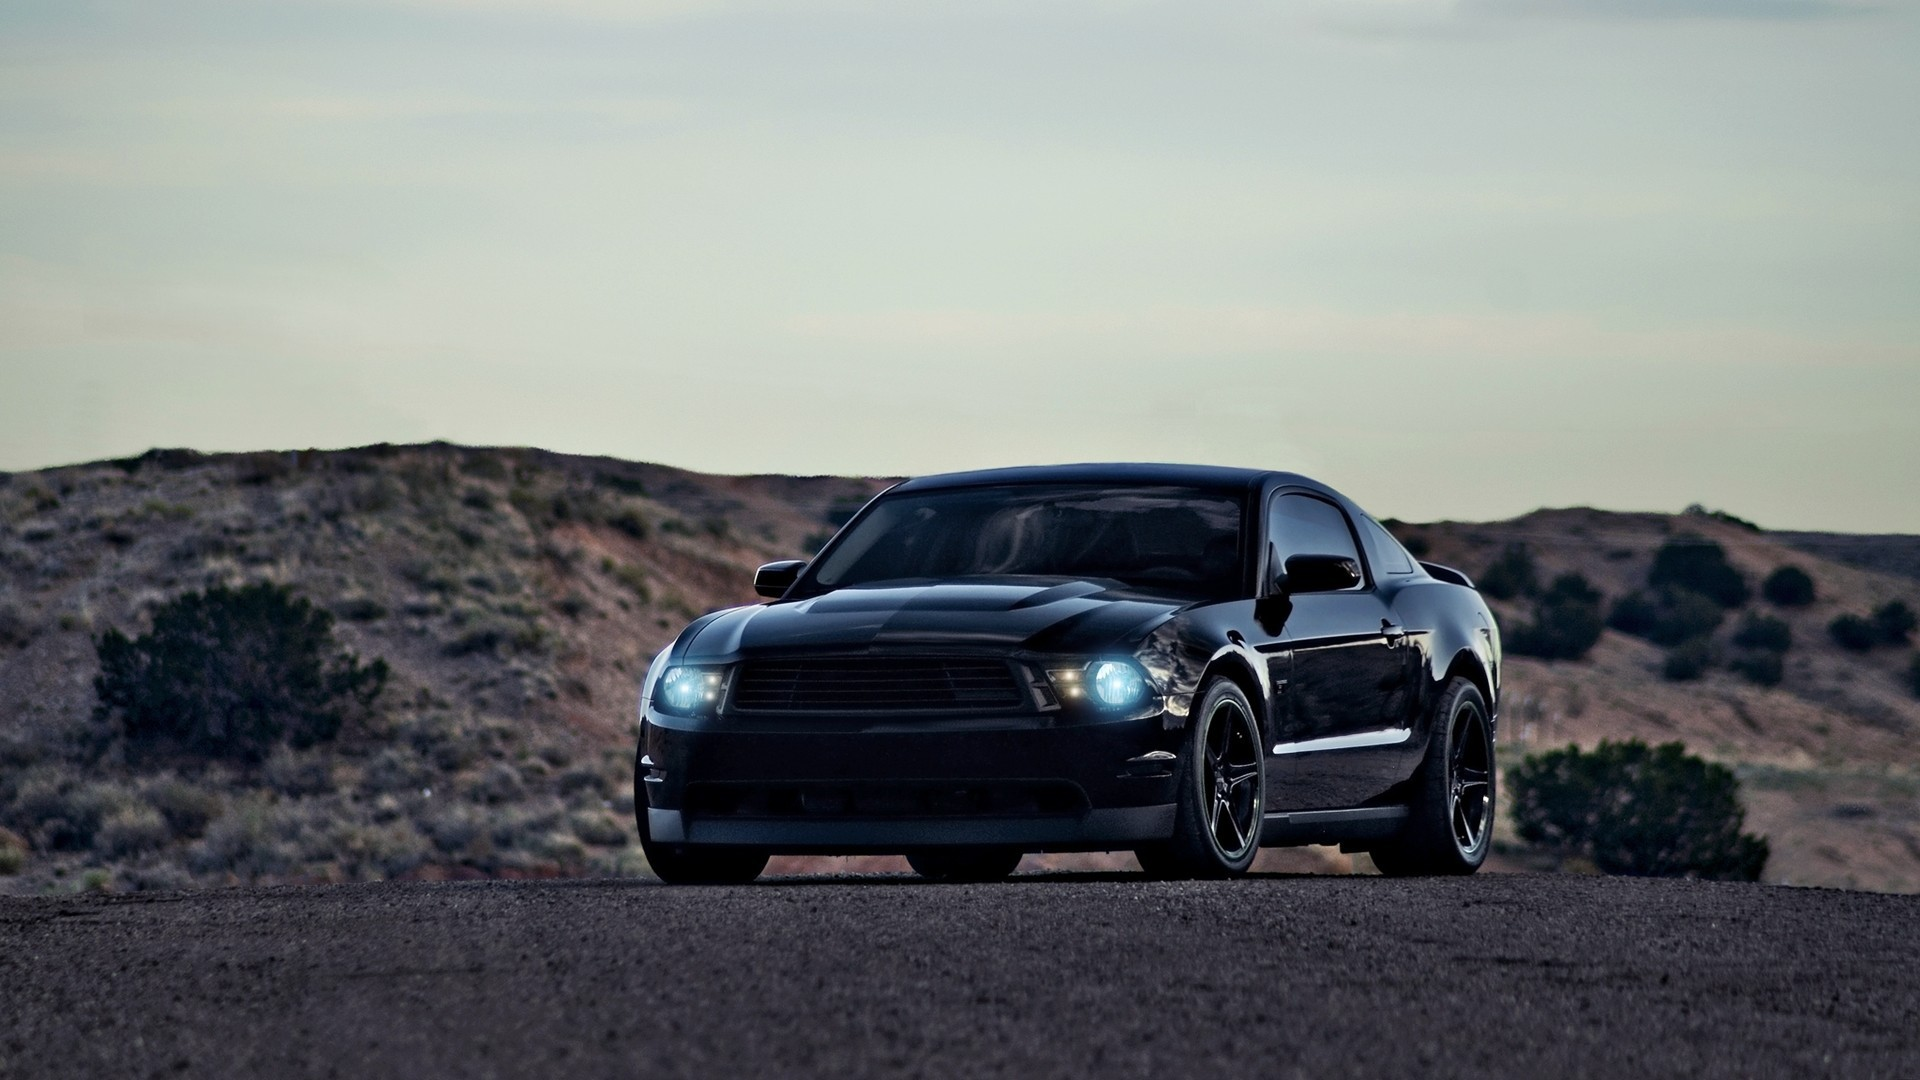 Black Ford Mustang 25 Background Wallpaper